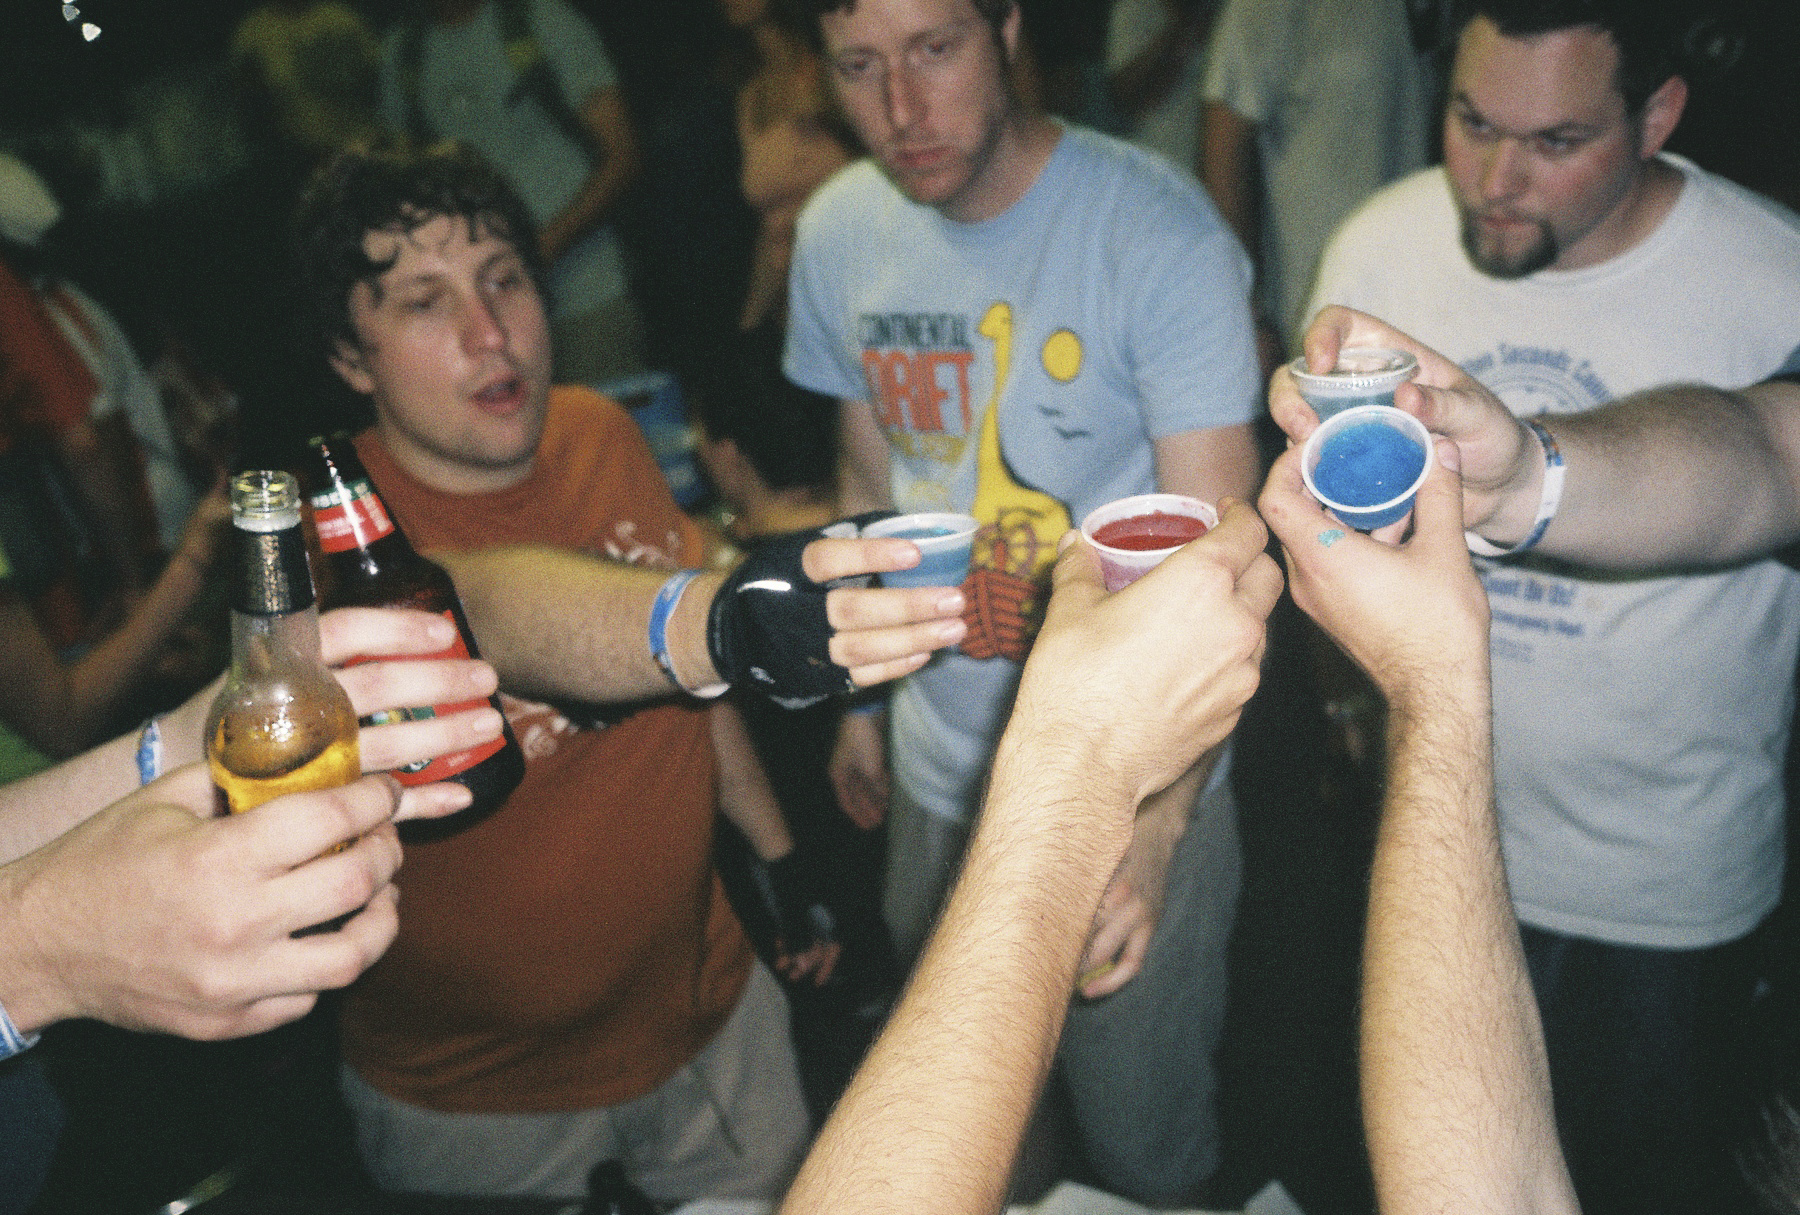 wabach party021.jpg